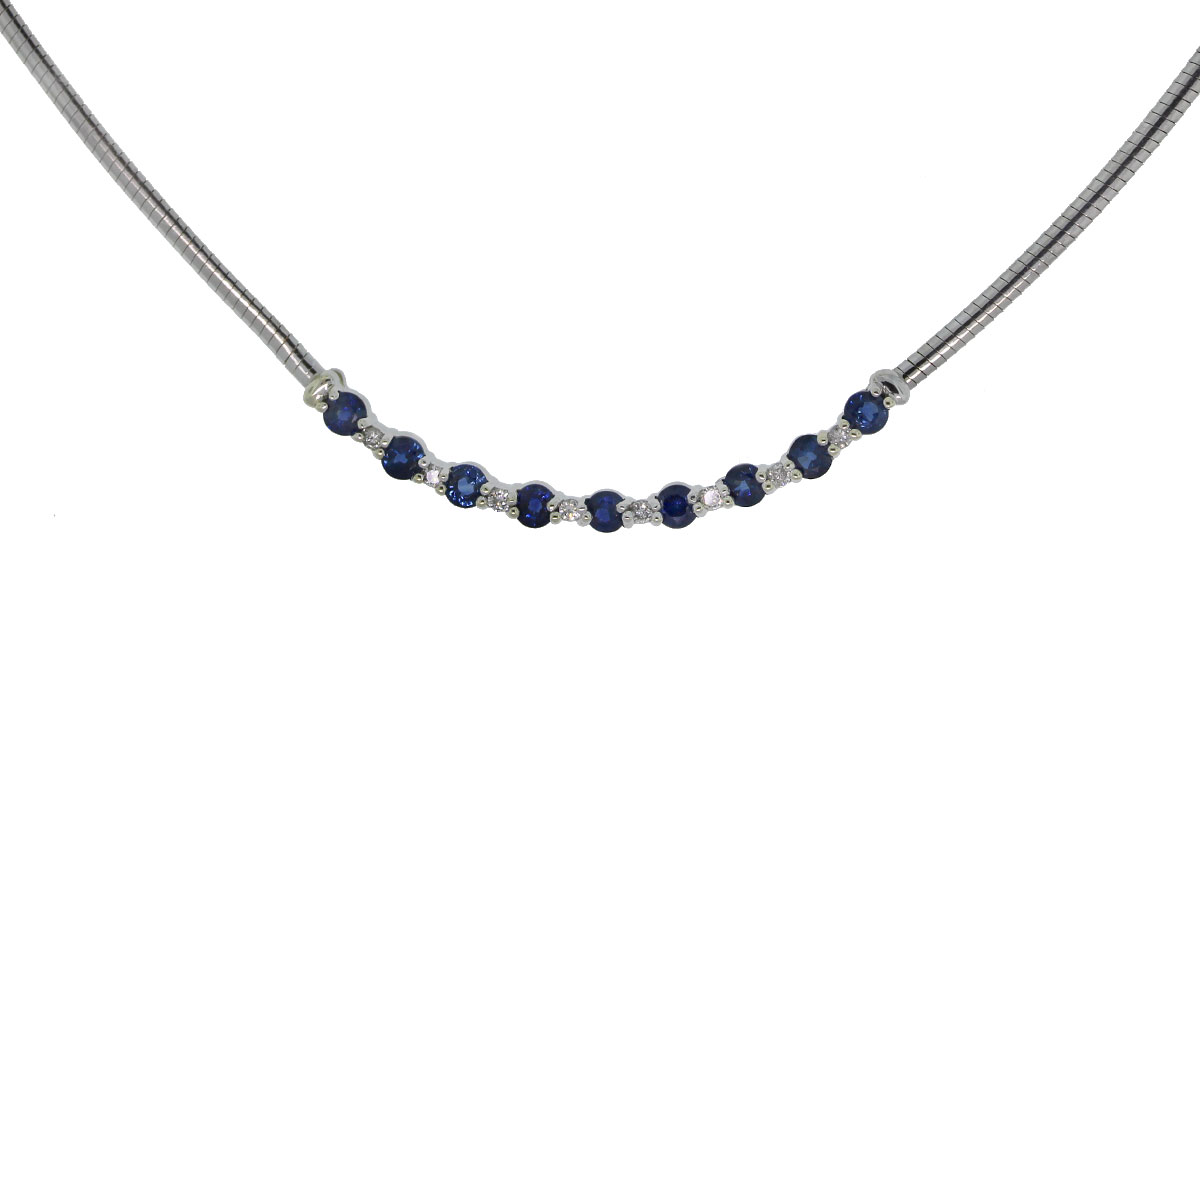 14k White Gold Diamond & Sapphire Necklace